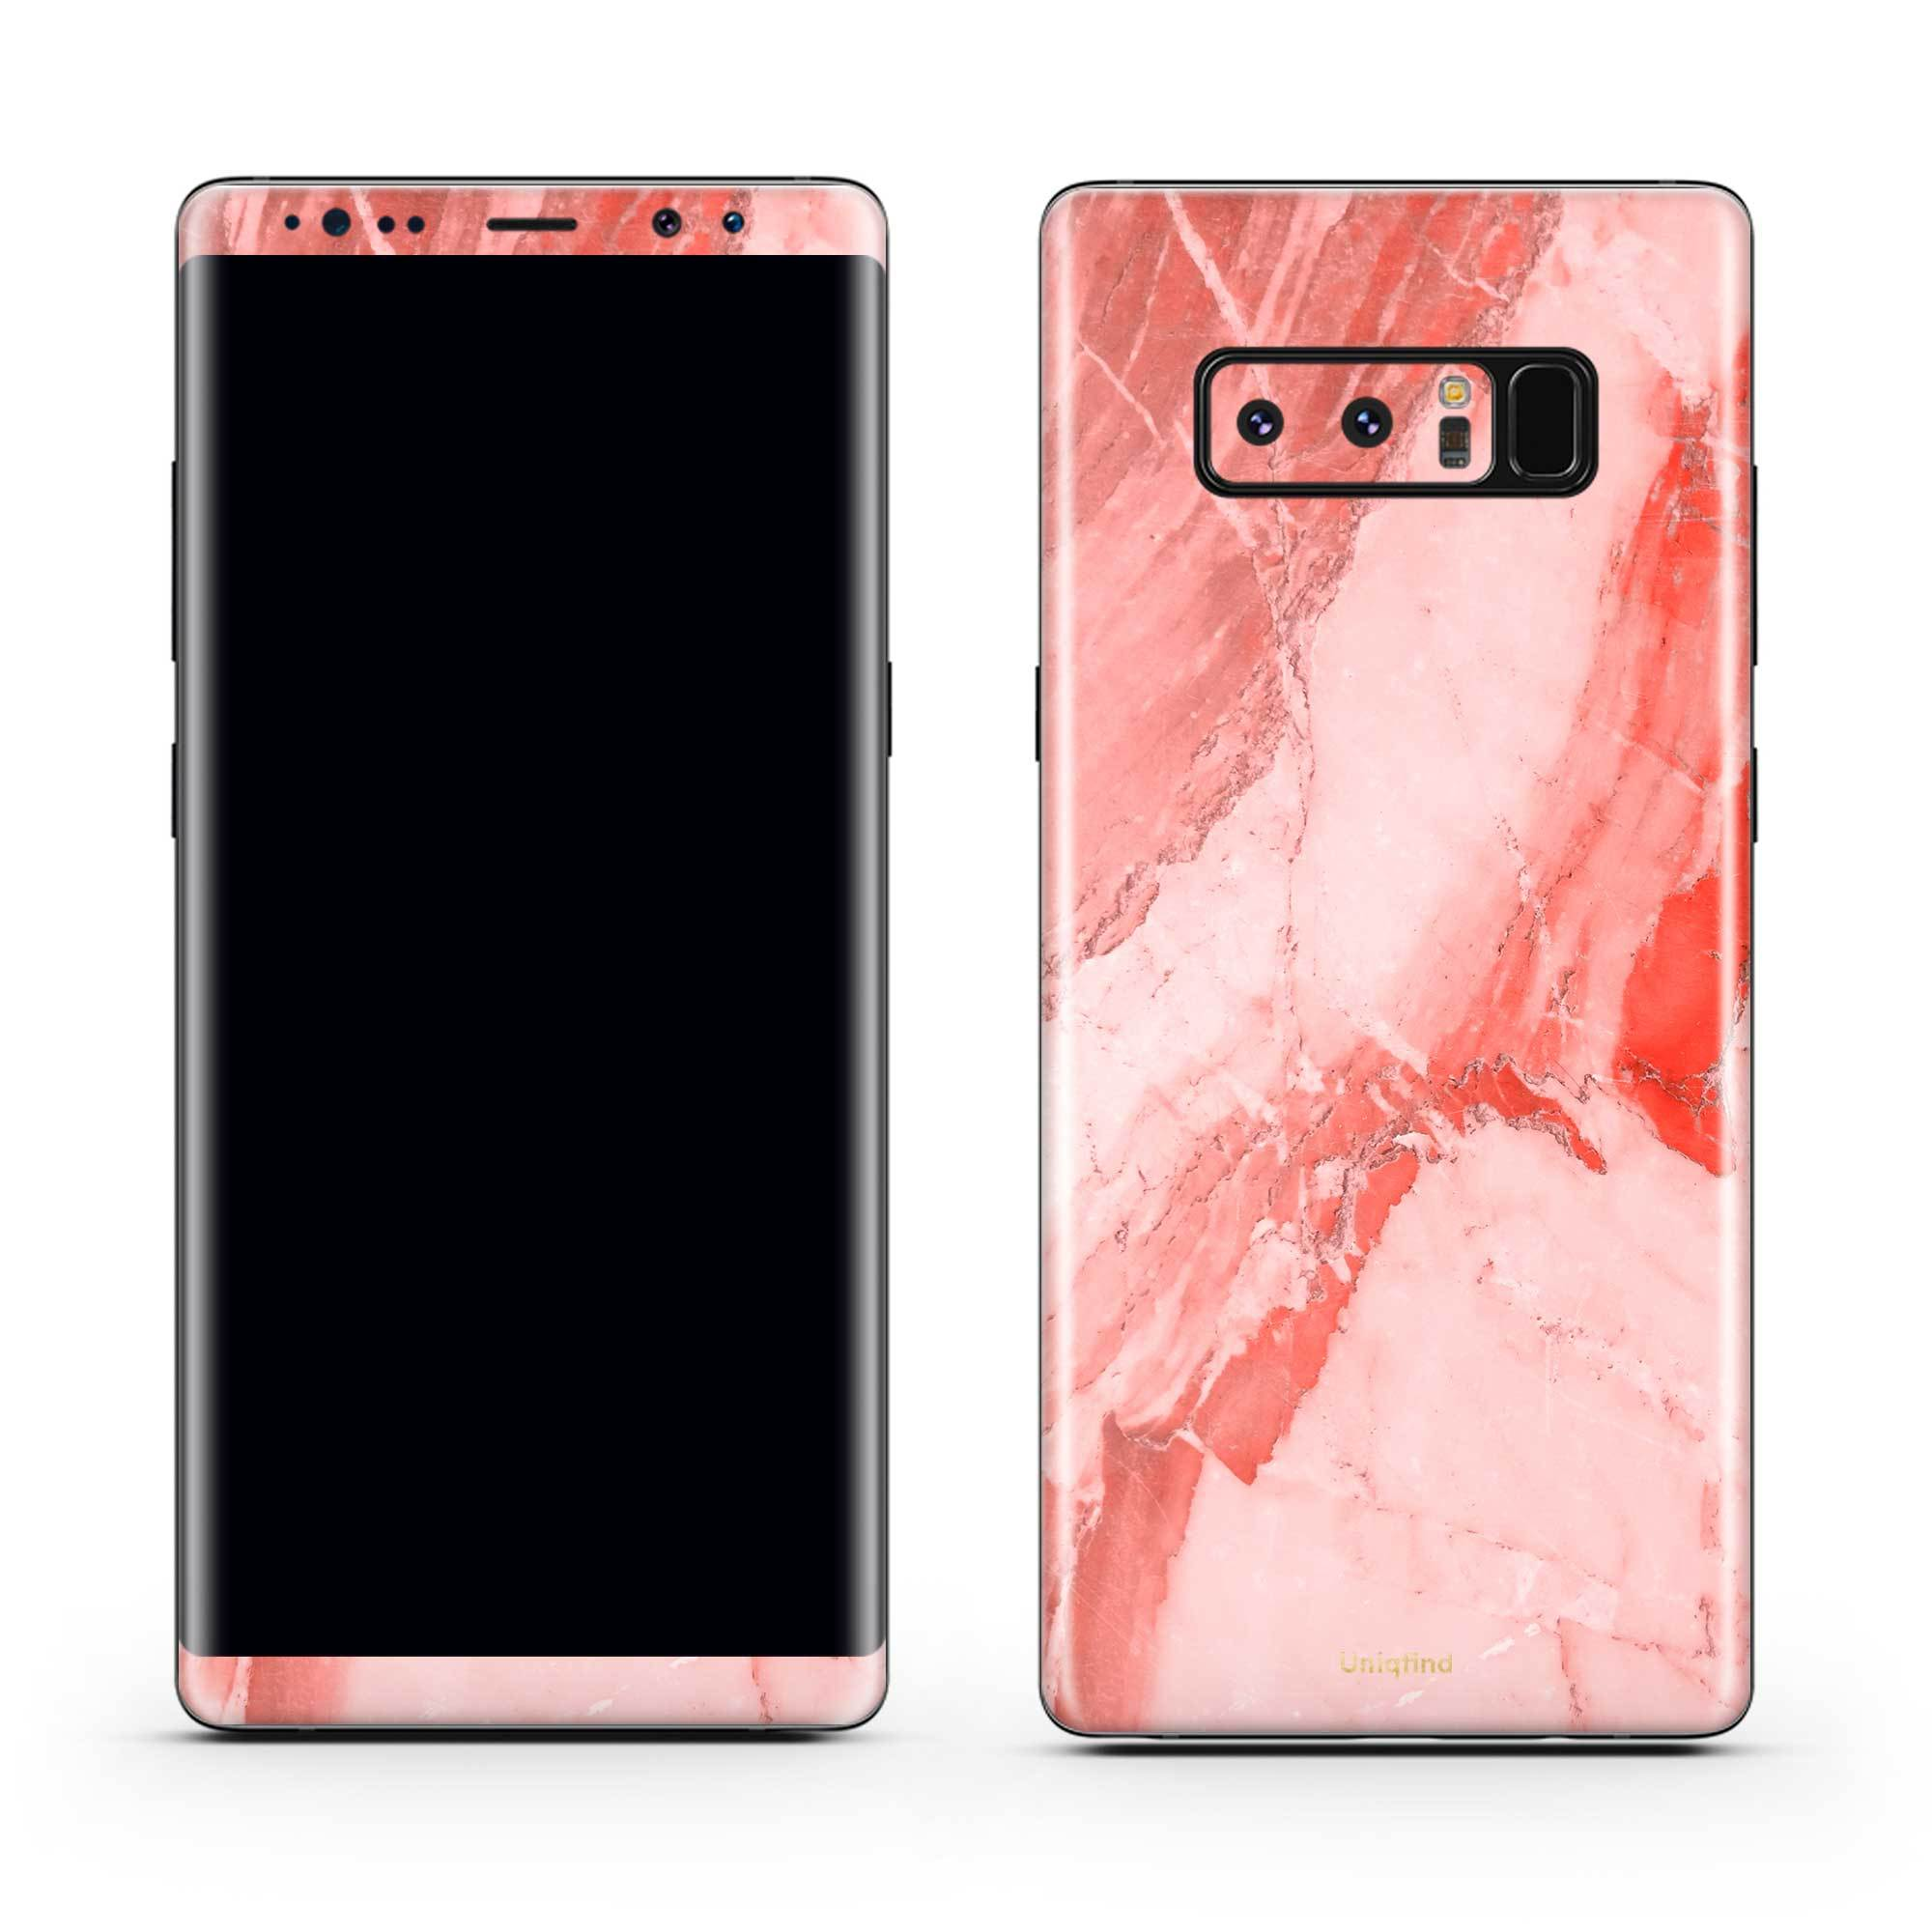 Coral Marble Galaxy Note 8 Skin + Case